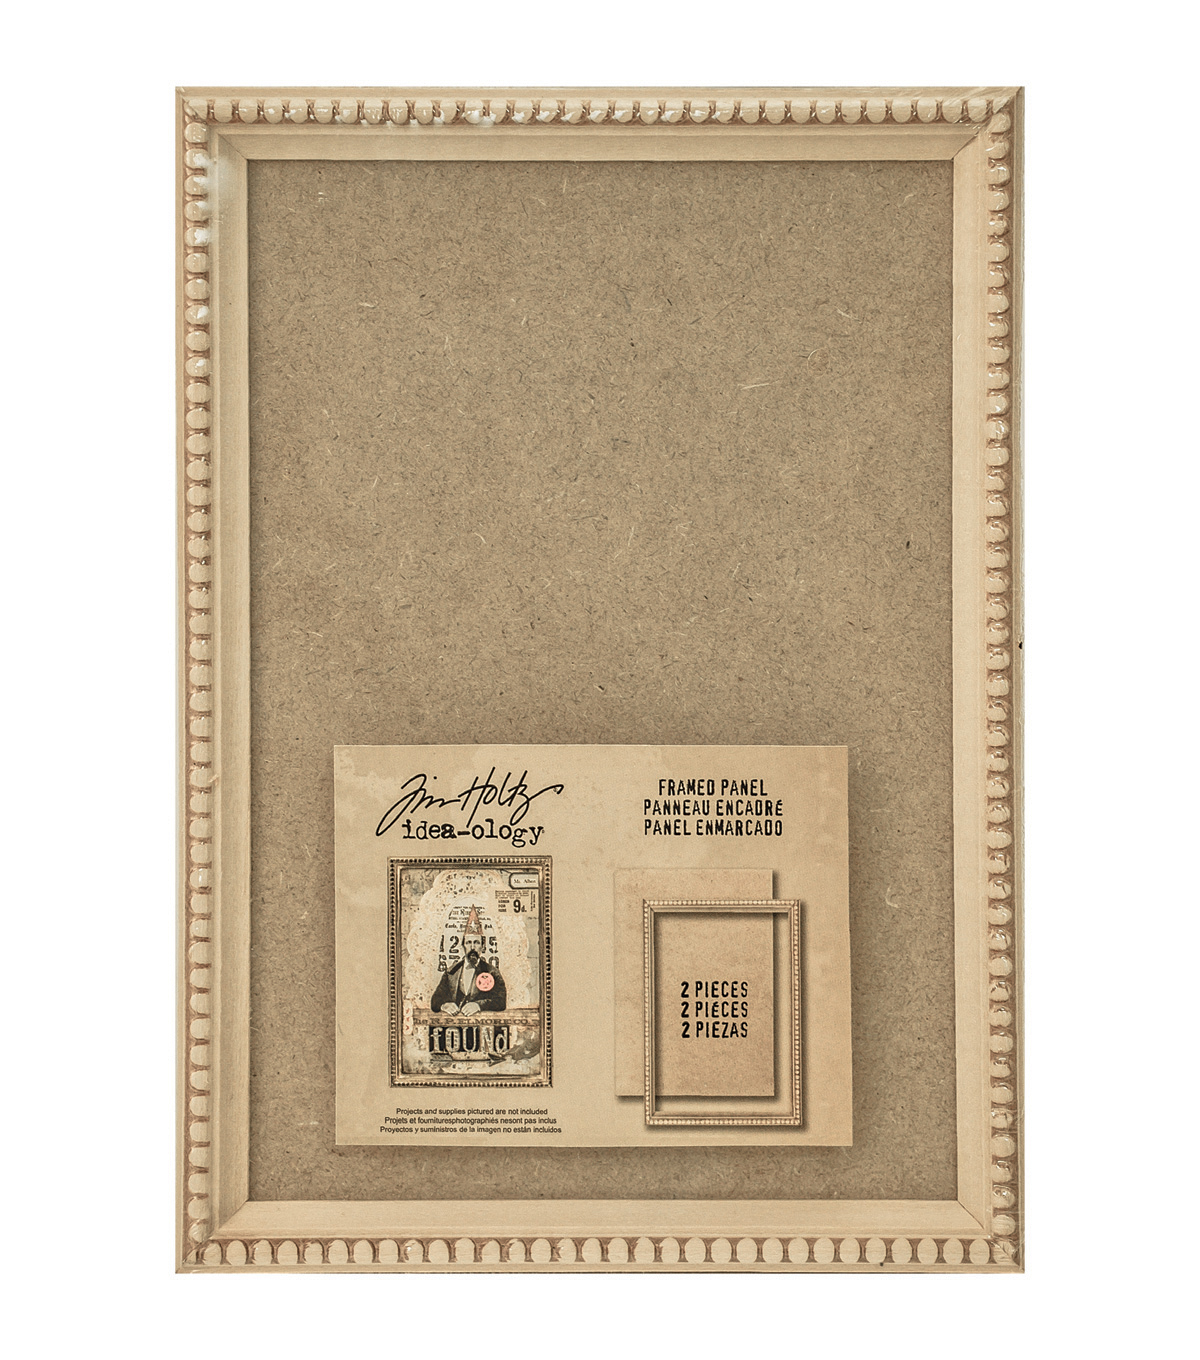 Tim Holtz Idea-Ology Framed Panel 9\u0022X6.5\u0022-Tan